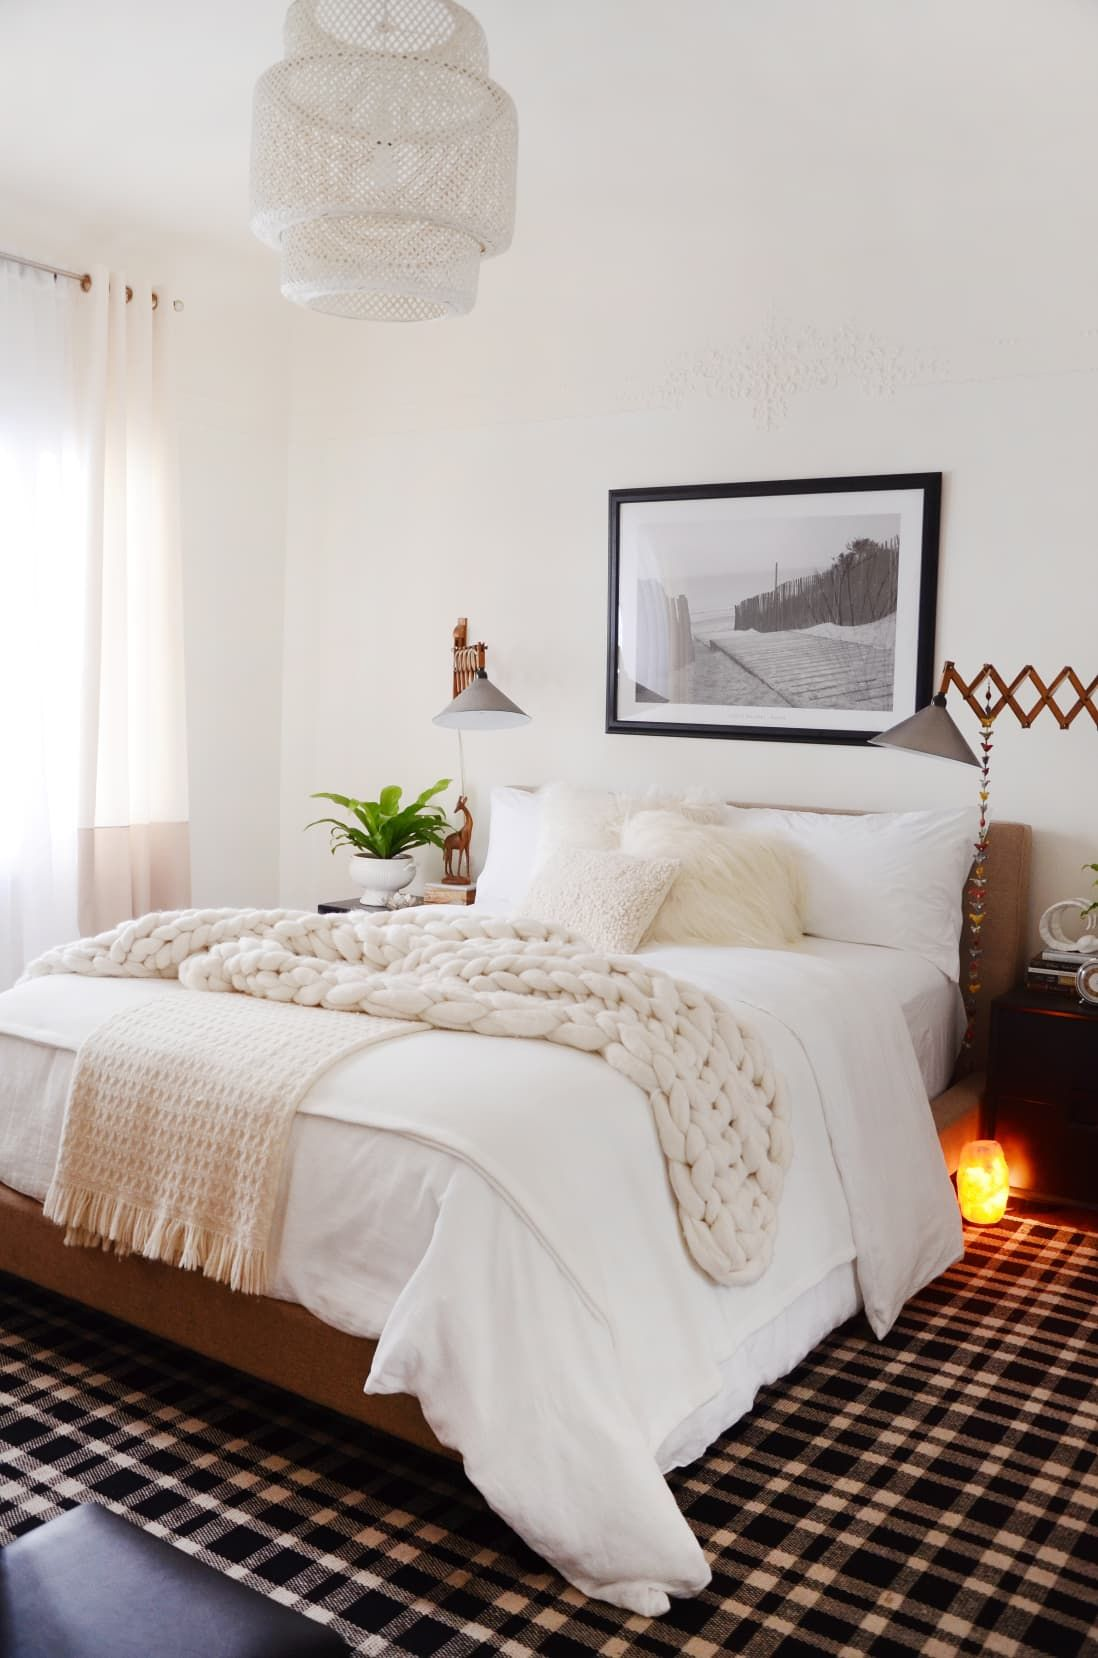 10 Ways to Make a Big Bedroom Feel Cozy (With images